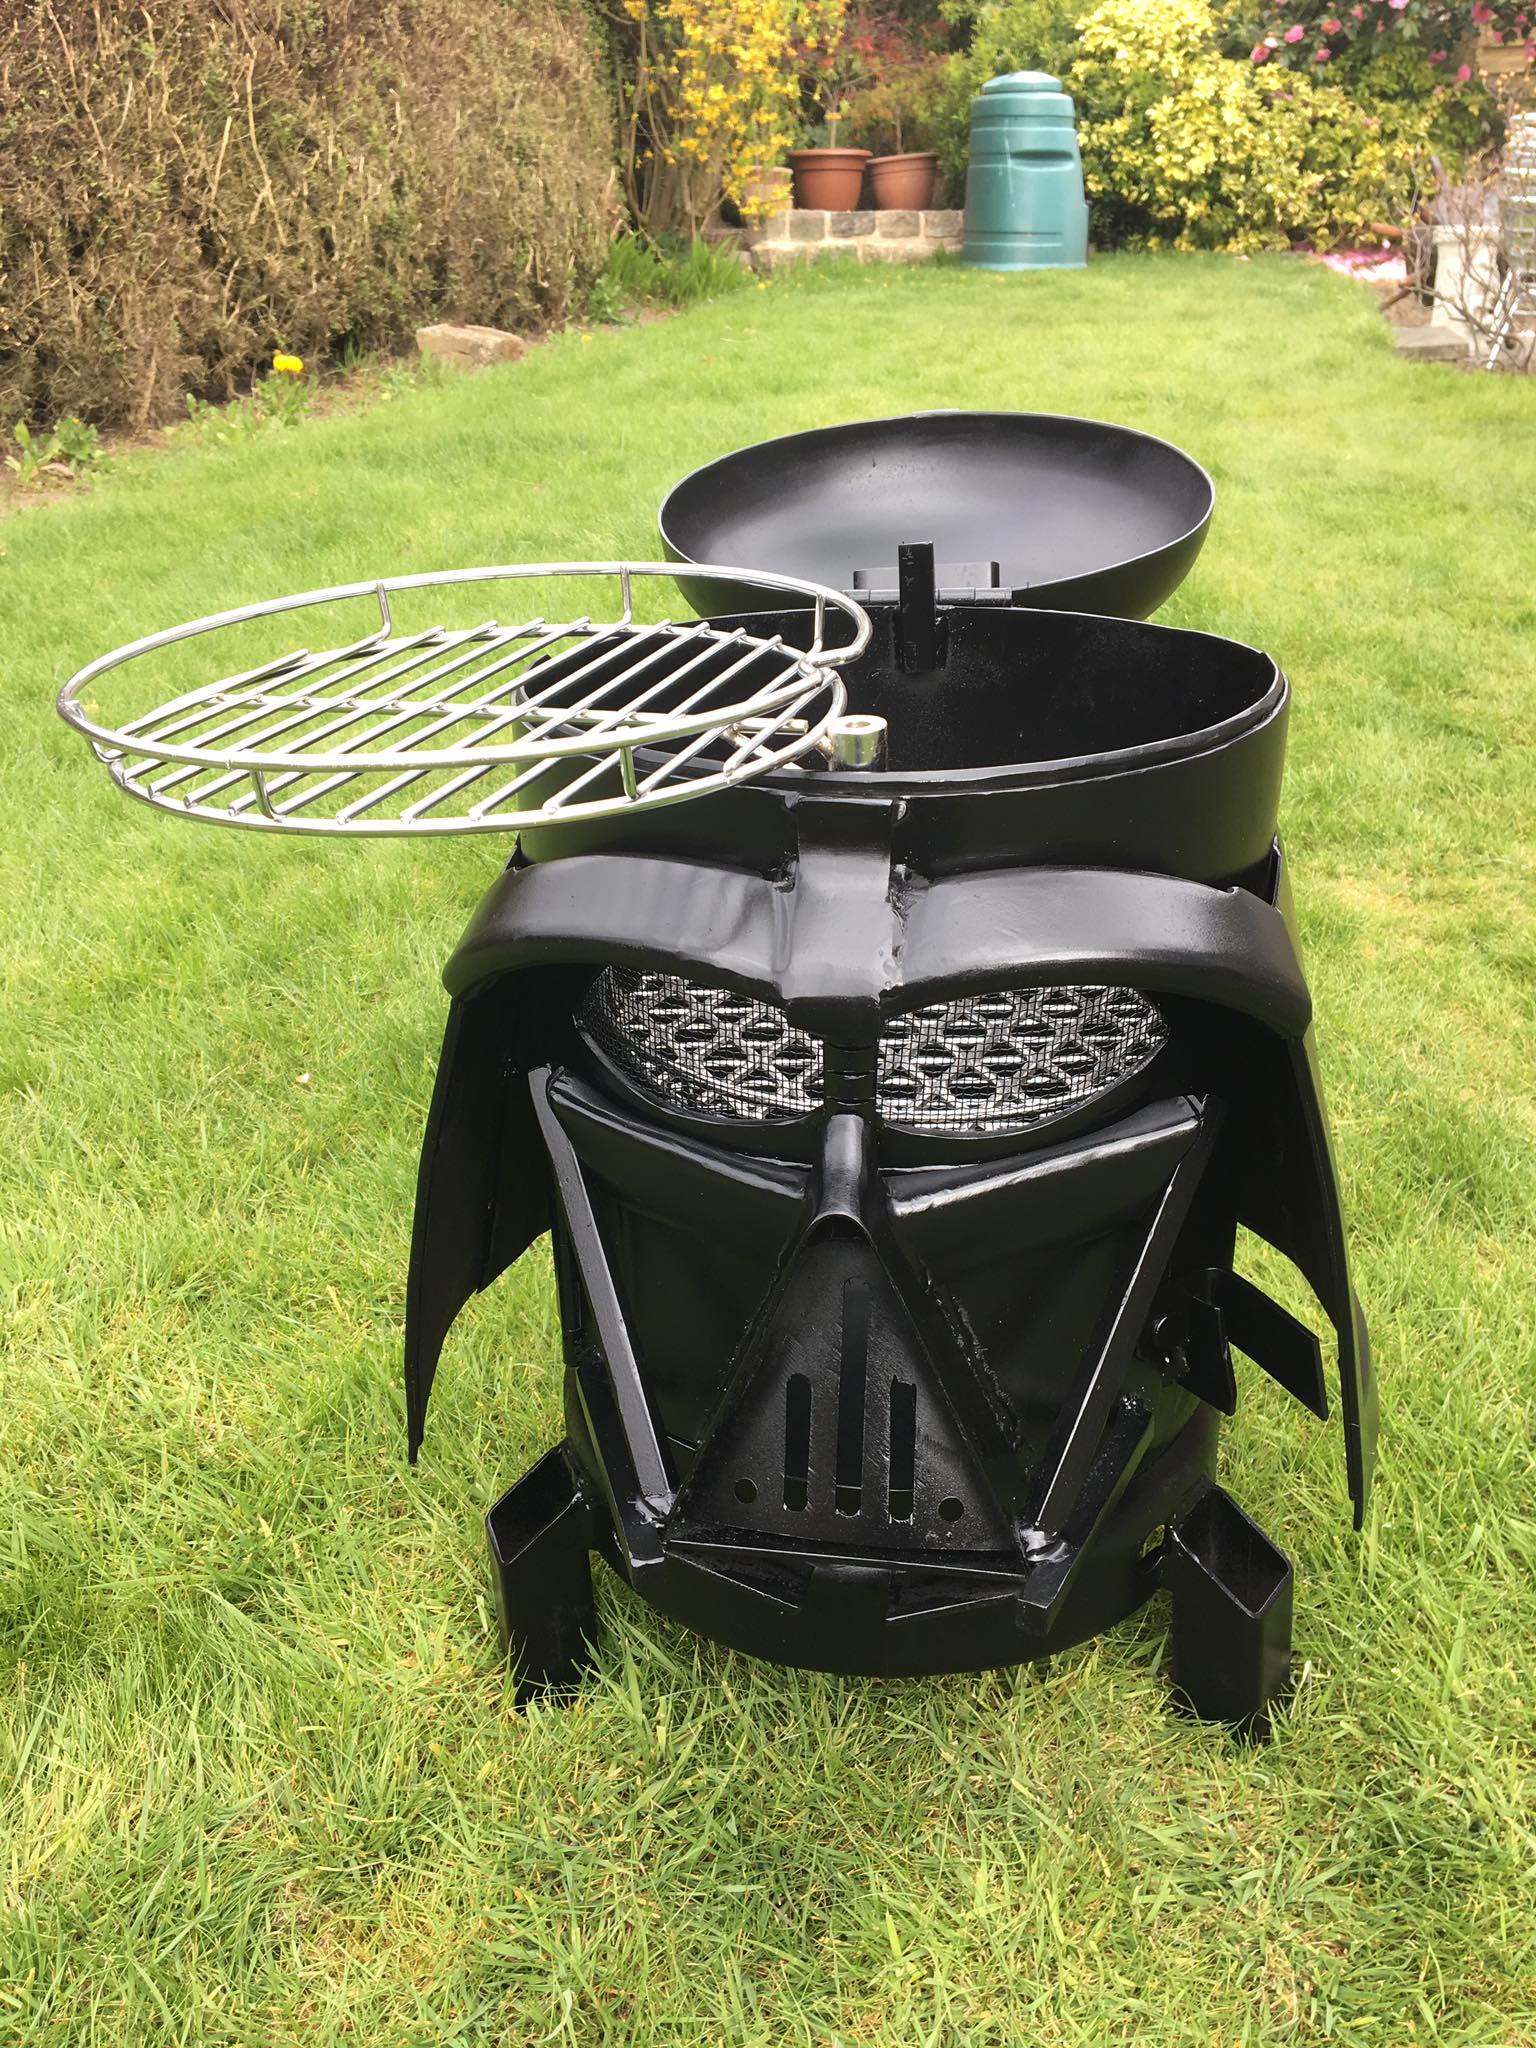 darth vader backyard grill and wood burner he 39 s more bbq now than man technabob. Black Bedroom Furniture Sets. Home Design Ideas